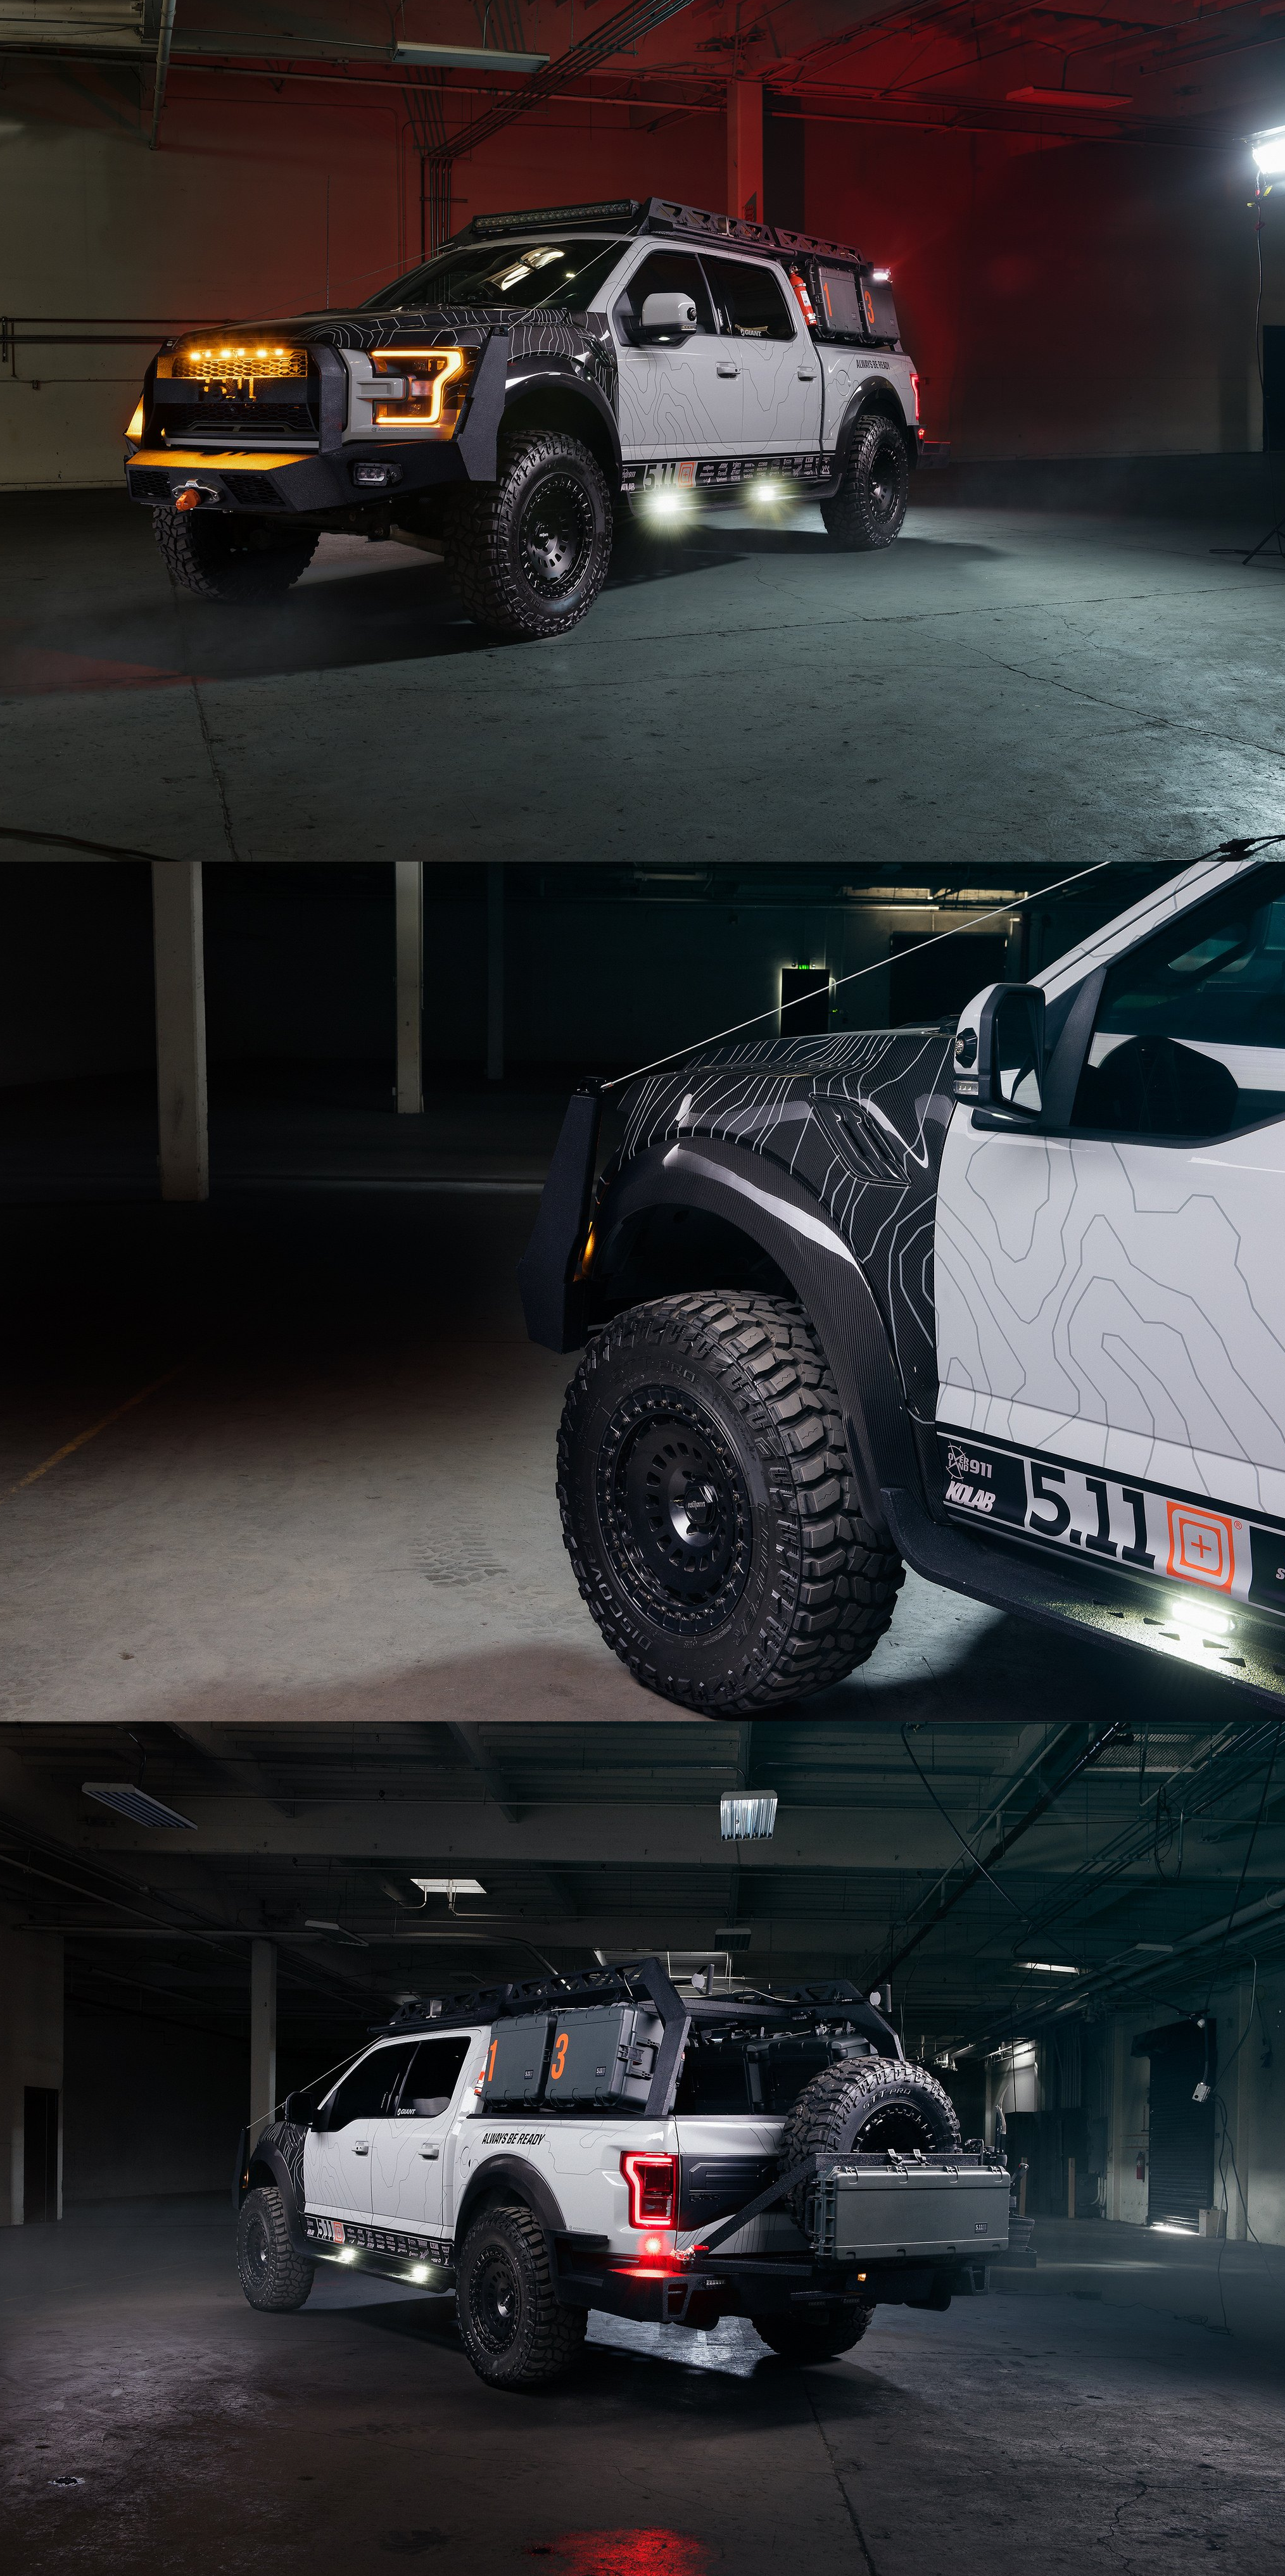 Royal Appearance Of Gray Lifted Ford Raptor With Black Custom Wheels For Trucks Choose Your New Set At Carid Com Photos By Roti Lifted Ford Ford Raptor Ford